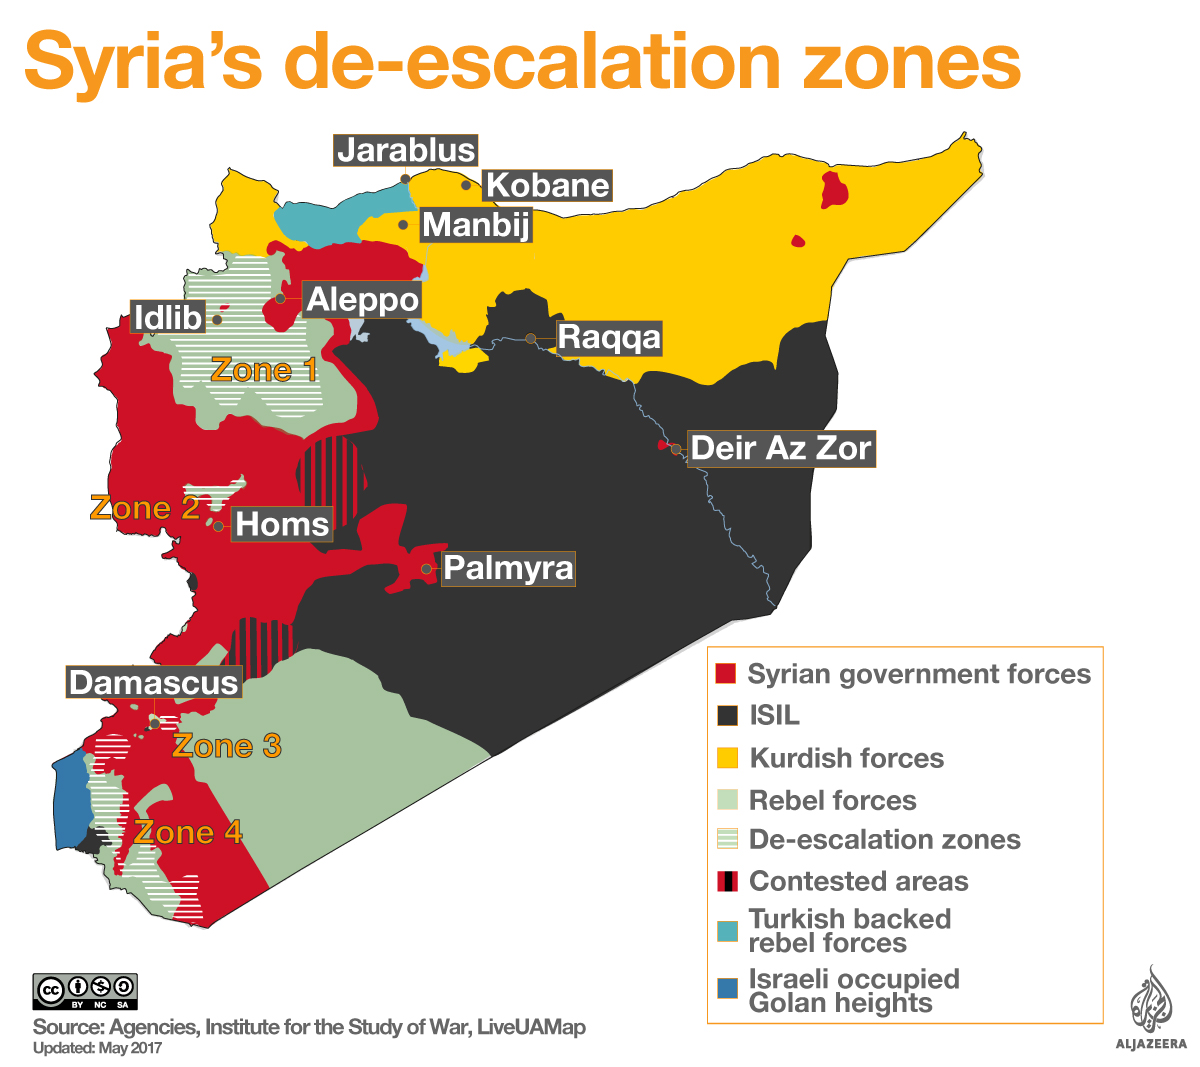 De-escalation zones in Syria